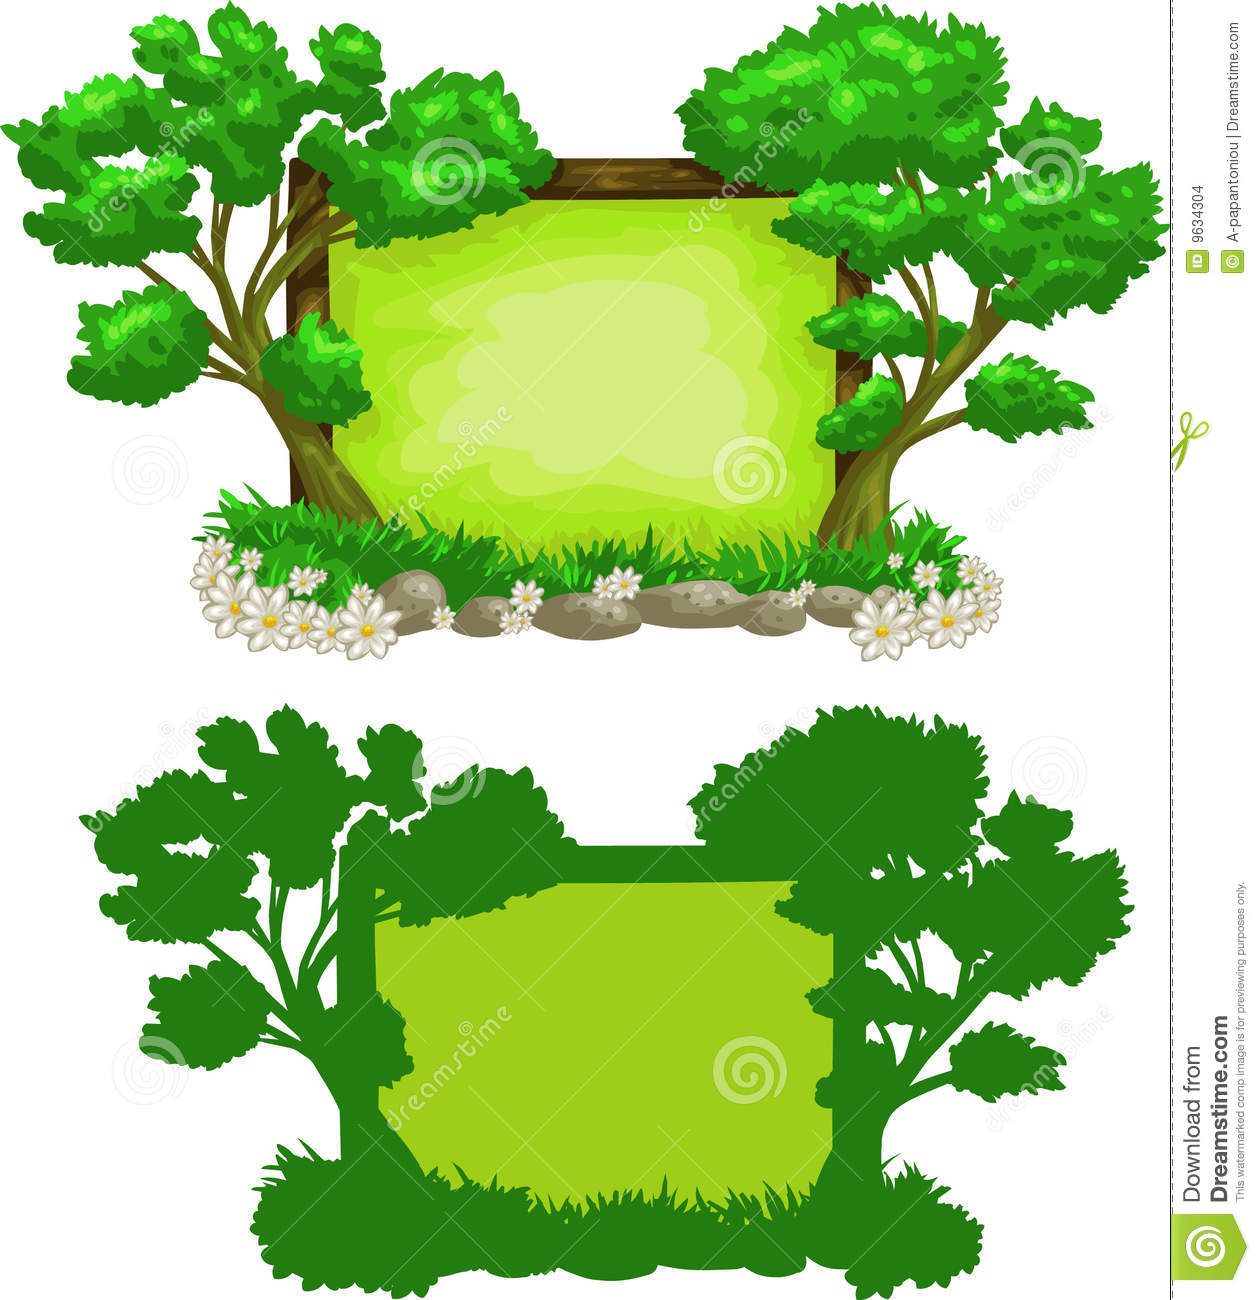 Tree clipart forest tree Forest Landscape summer Forest